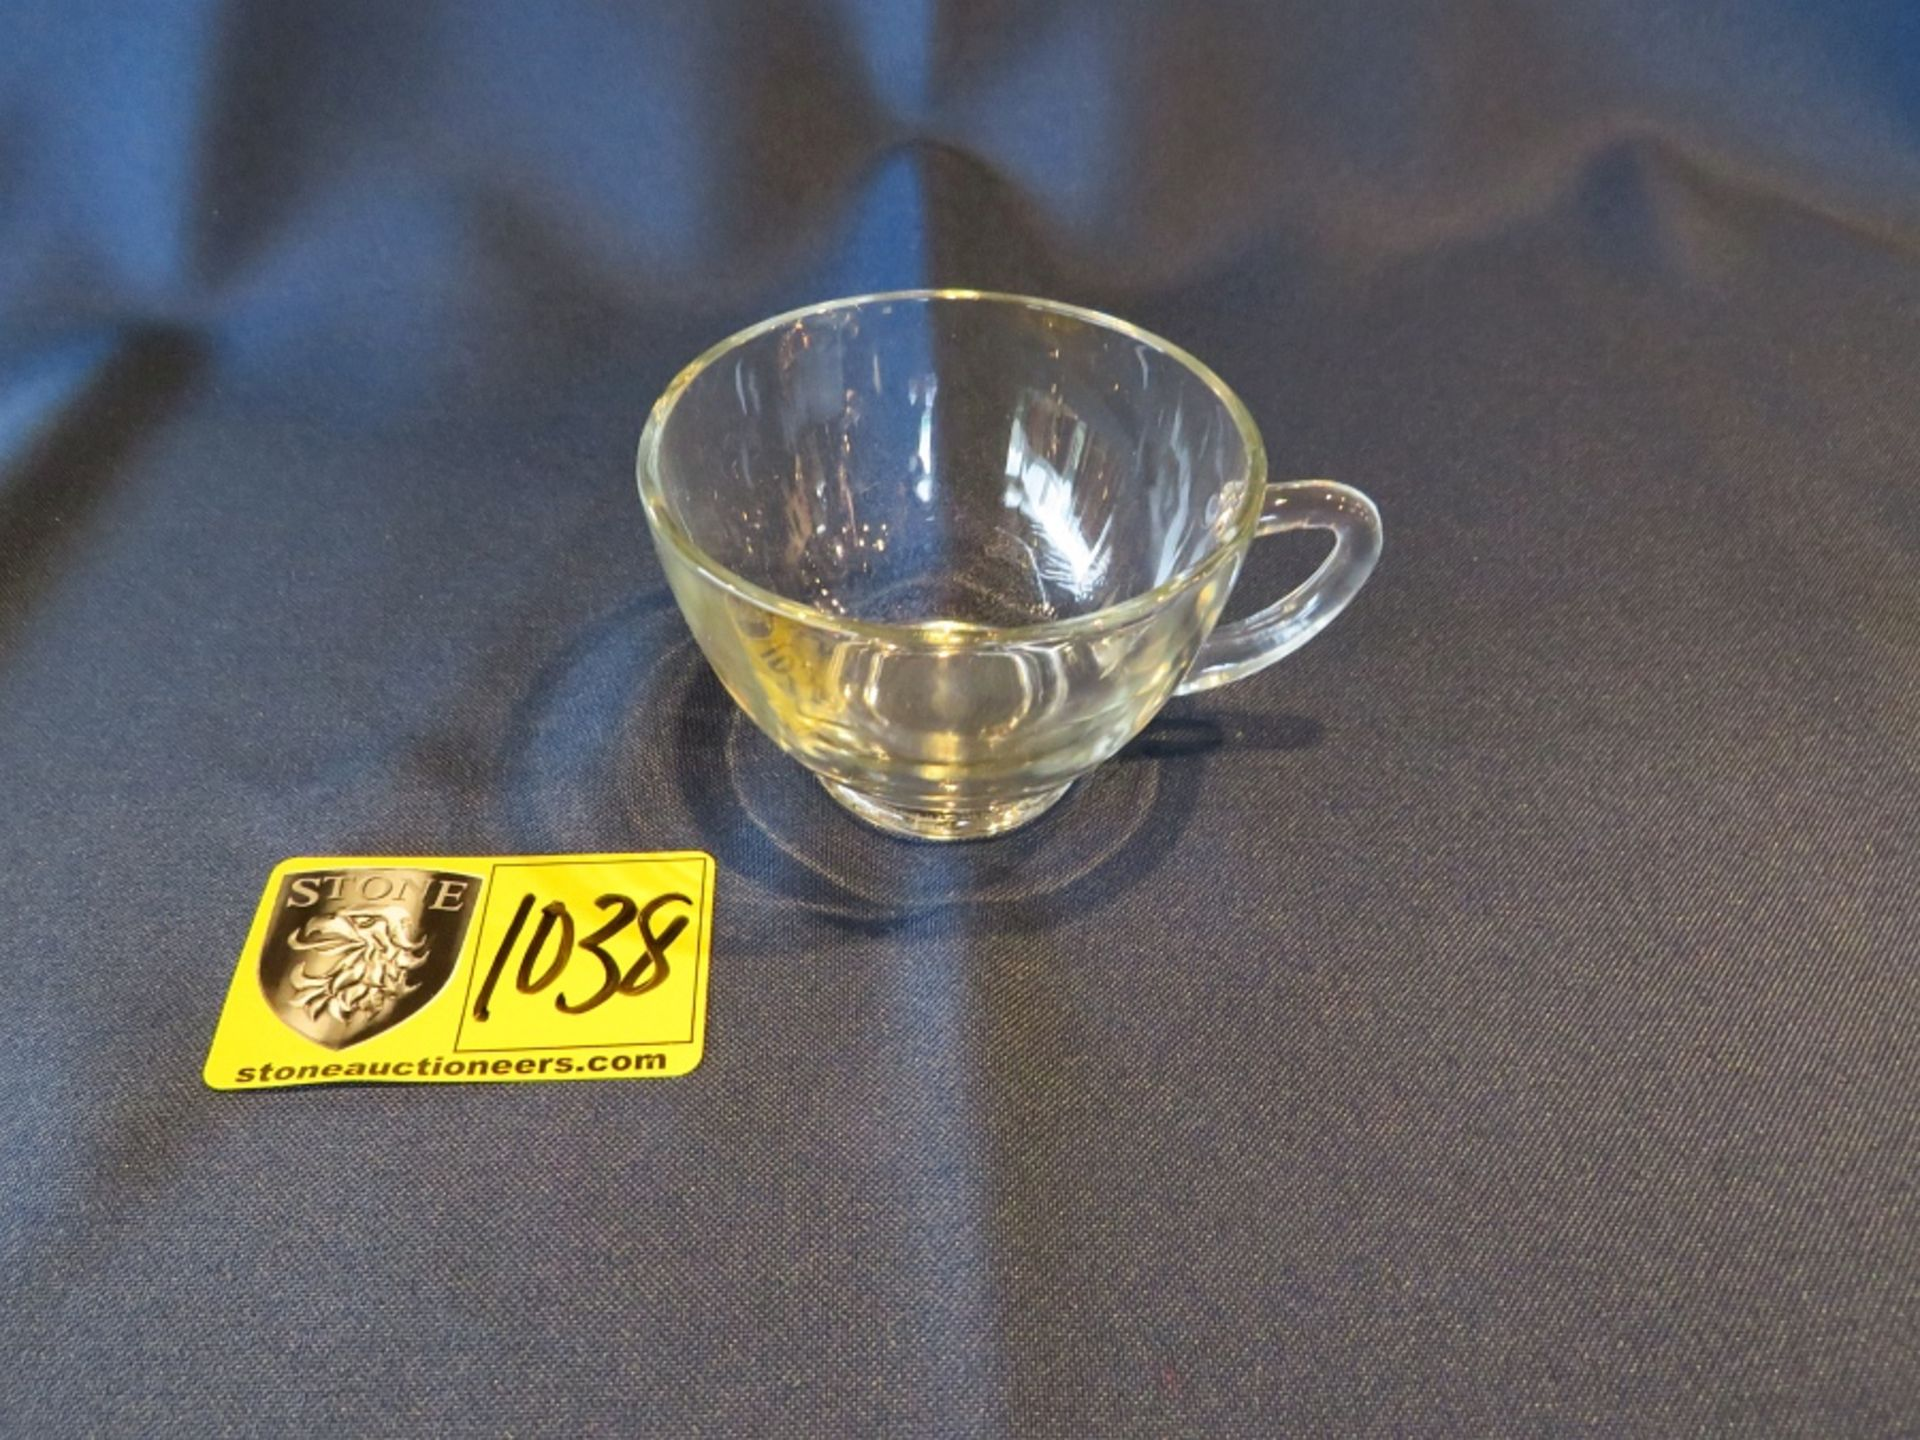 Lot 1038 - PUNCH CUP GLASS 6OZ.